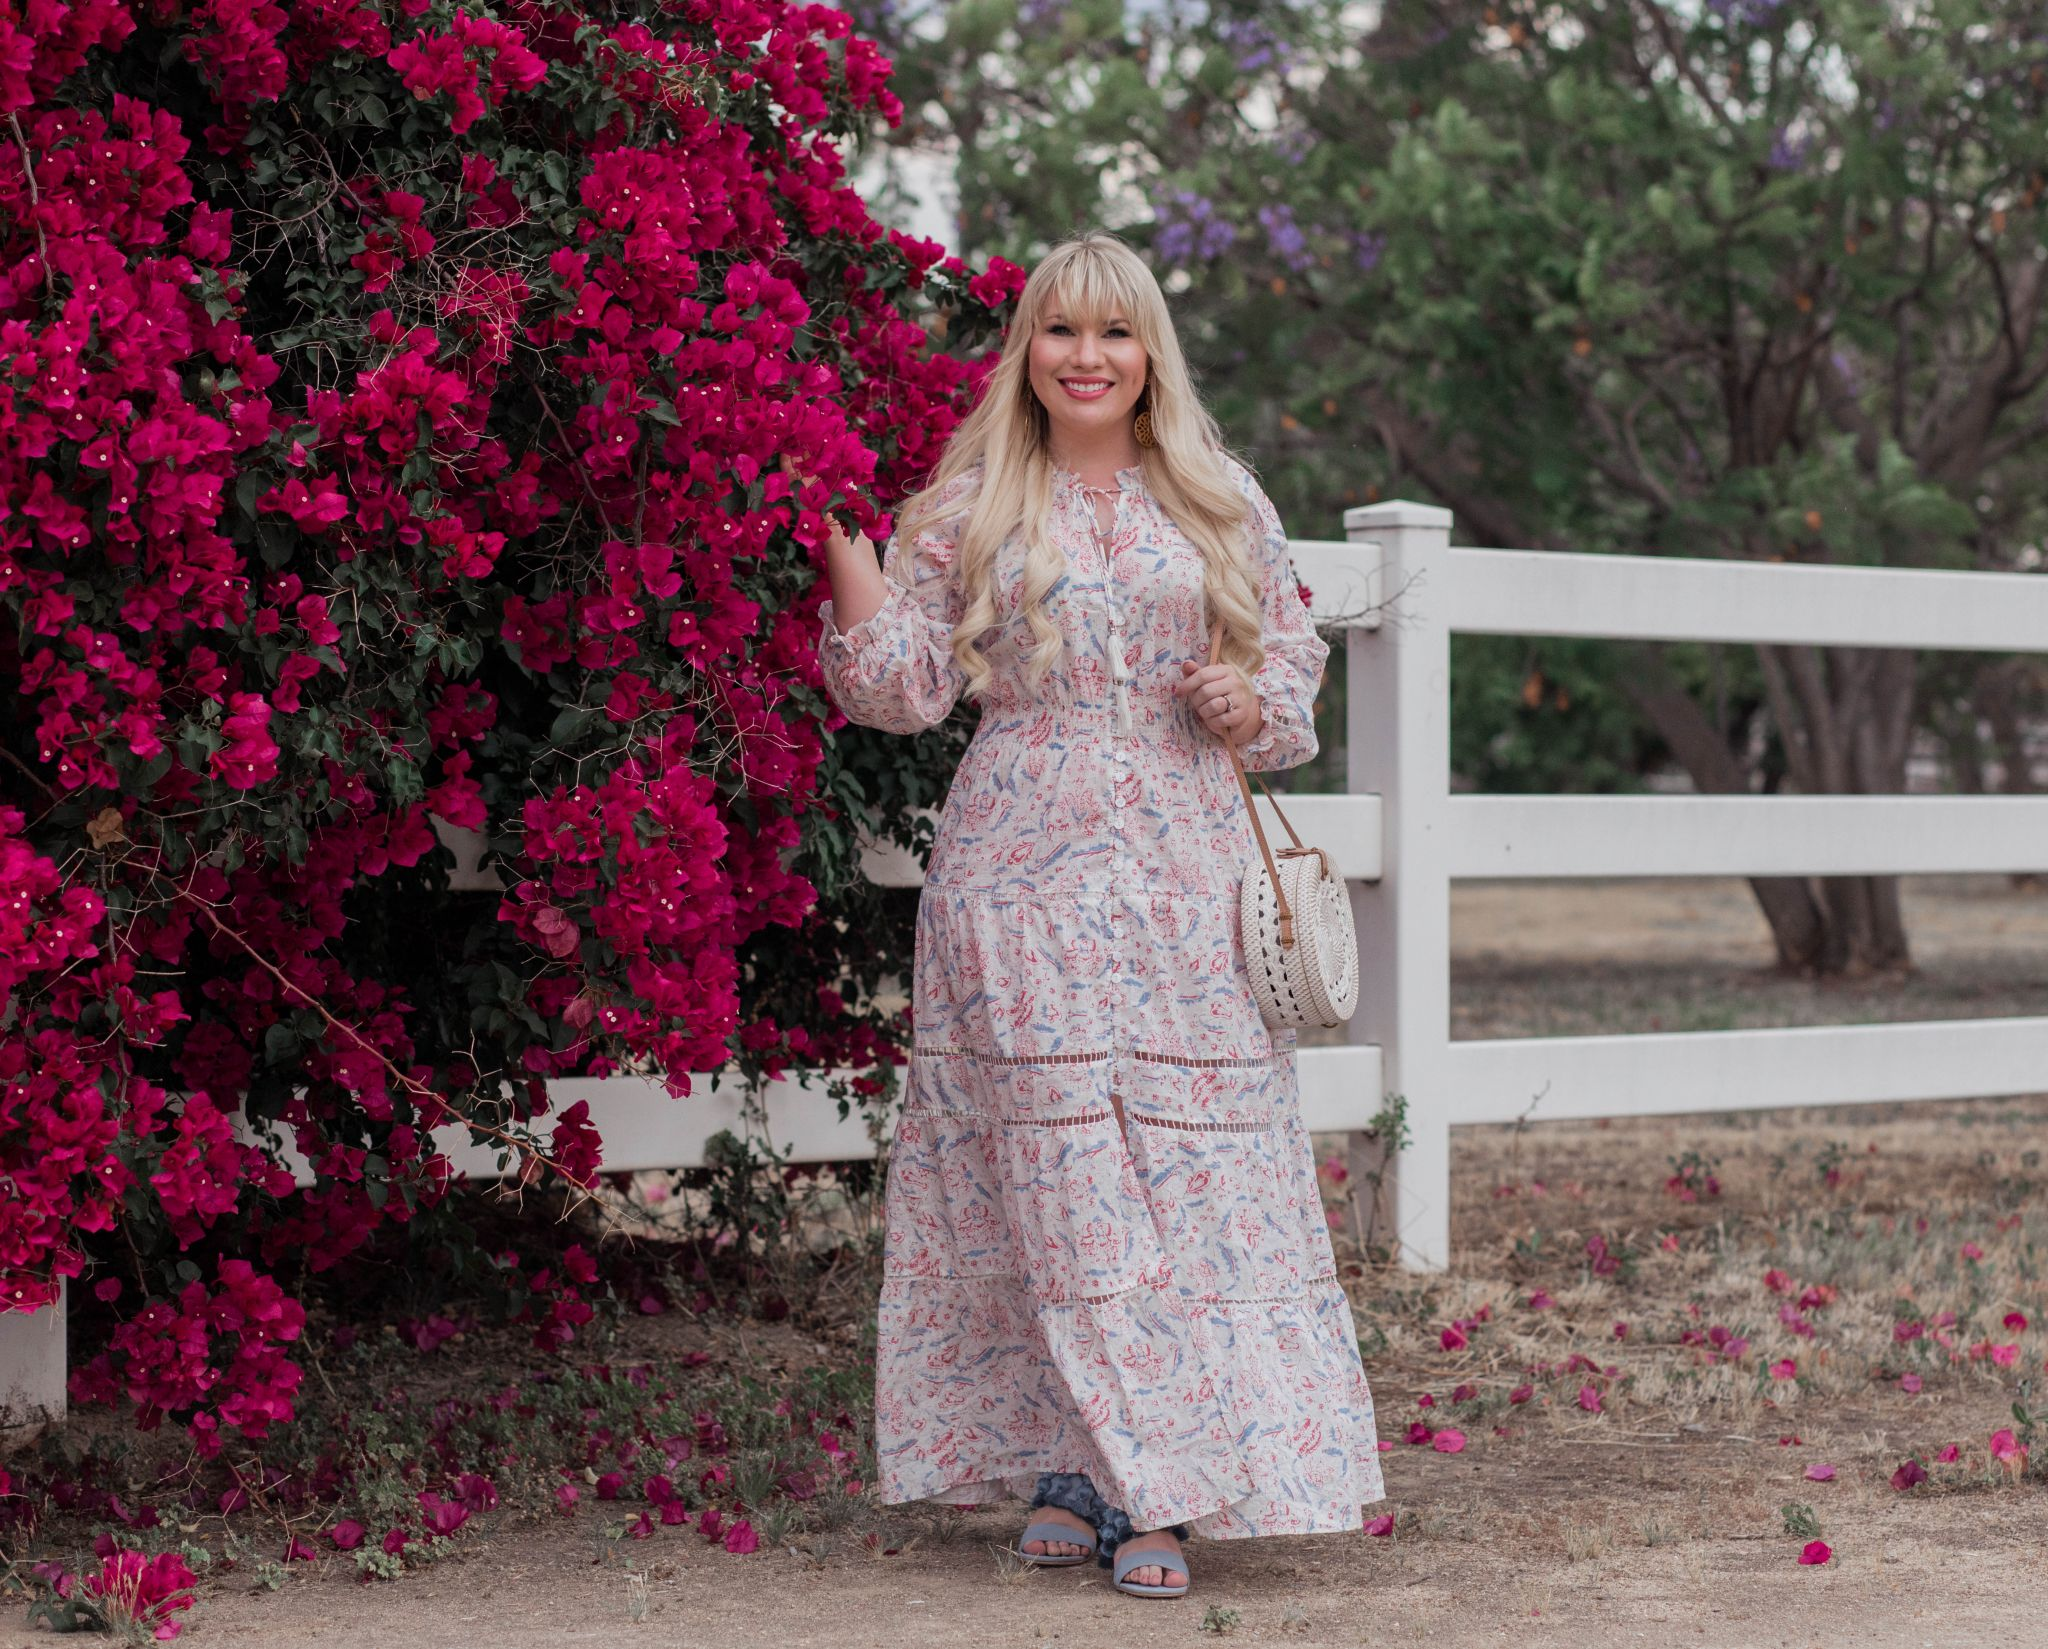 The Best Summer Maxi Dresses for Petites